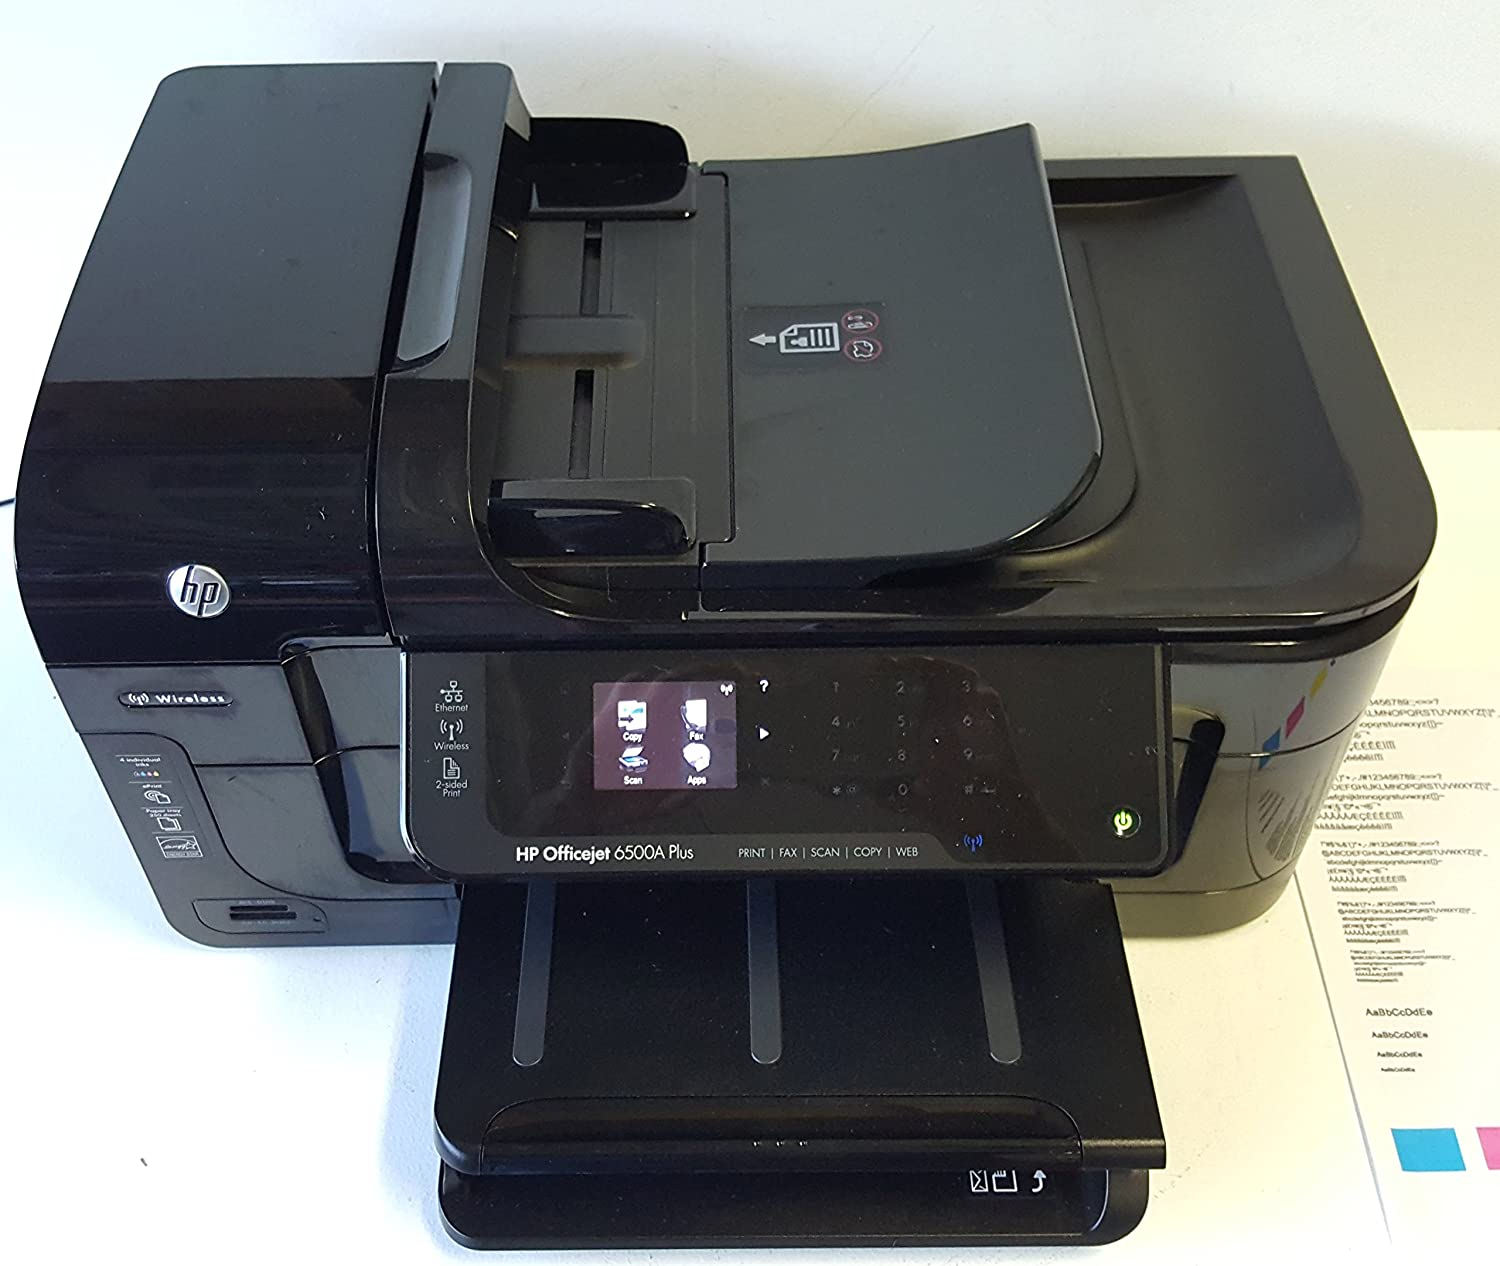 Amazon.com: HP Officejet 6500A Plus e-All-in-One Inkjet Printers:  Electronics